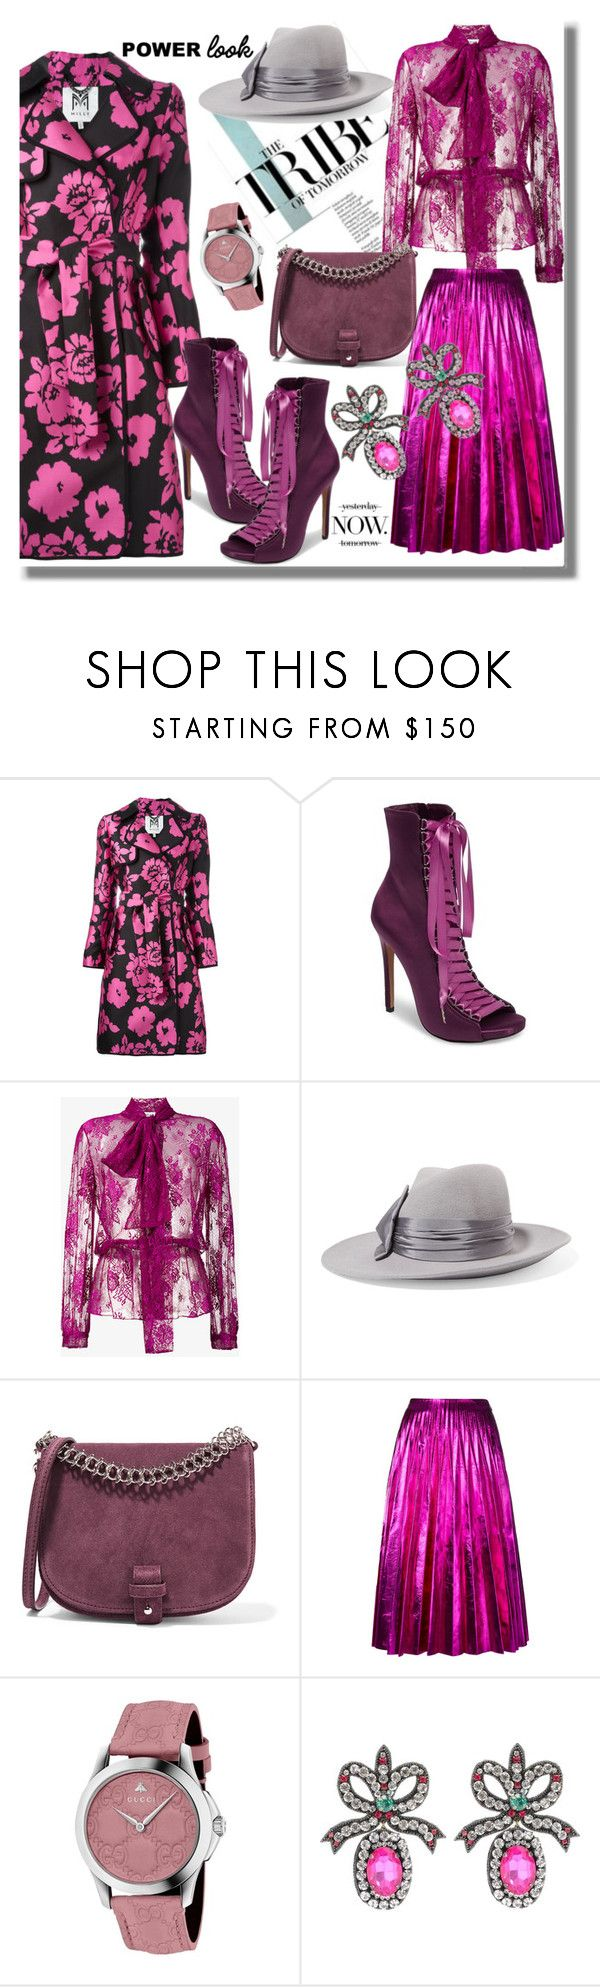 """""""Power Look"""" by pesanjsp ❤ liked on Polyvore featuring Milly, Steve Madden, Balenciaga, Eugenia Kim, Little Liffner, Gucci, girlpower and powerlook"""